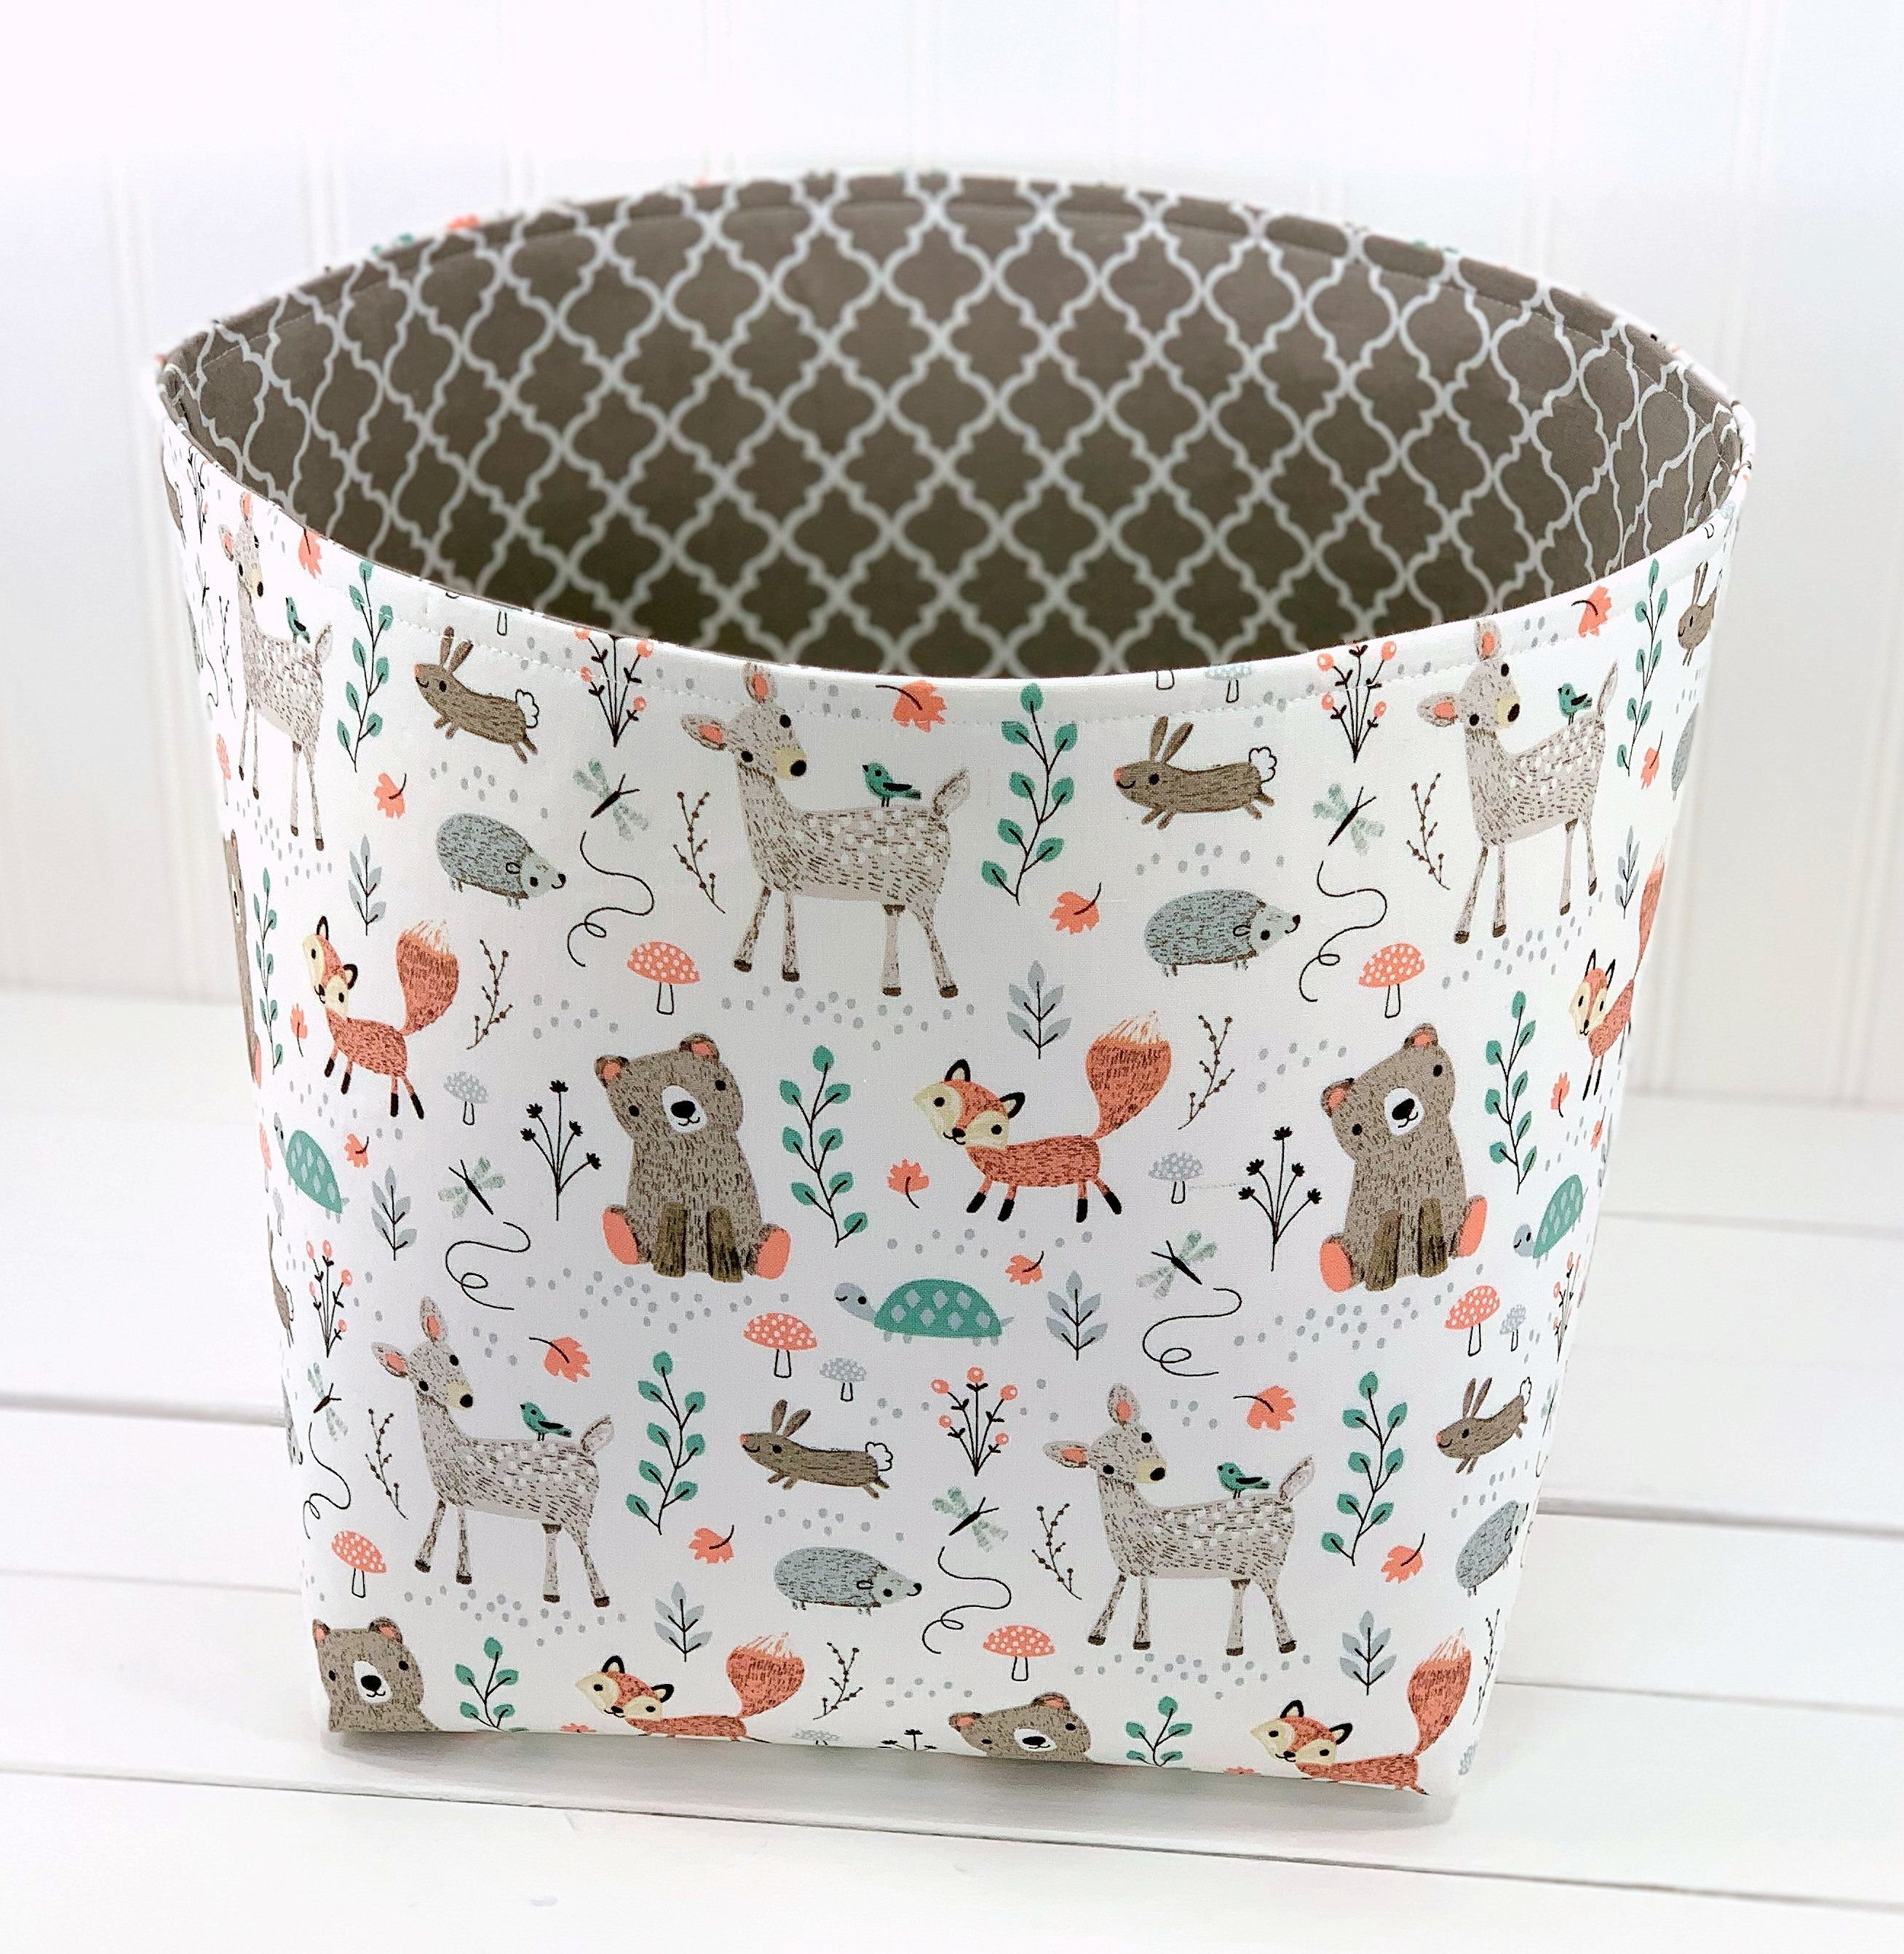 Woodland Nursery Fabric Storage Basket Organizer Bin Container Toy Storage Gray Deer Bears And Fox In 2020 Fabric Storage Baskets Fabric Storage Storage Baskets